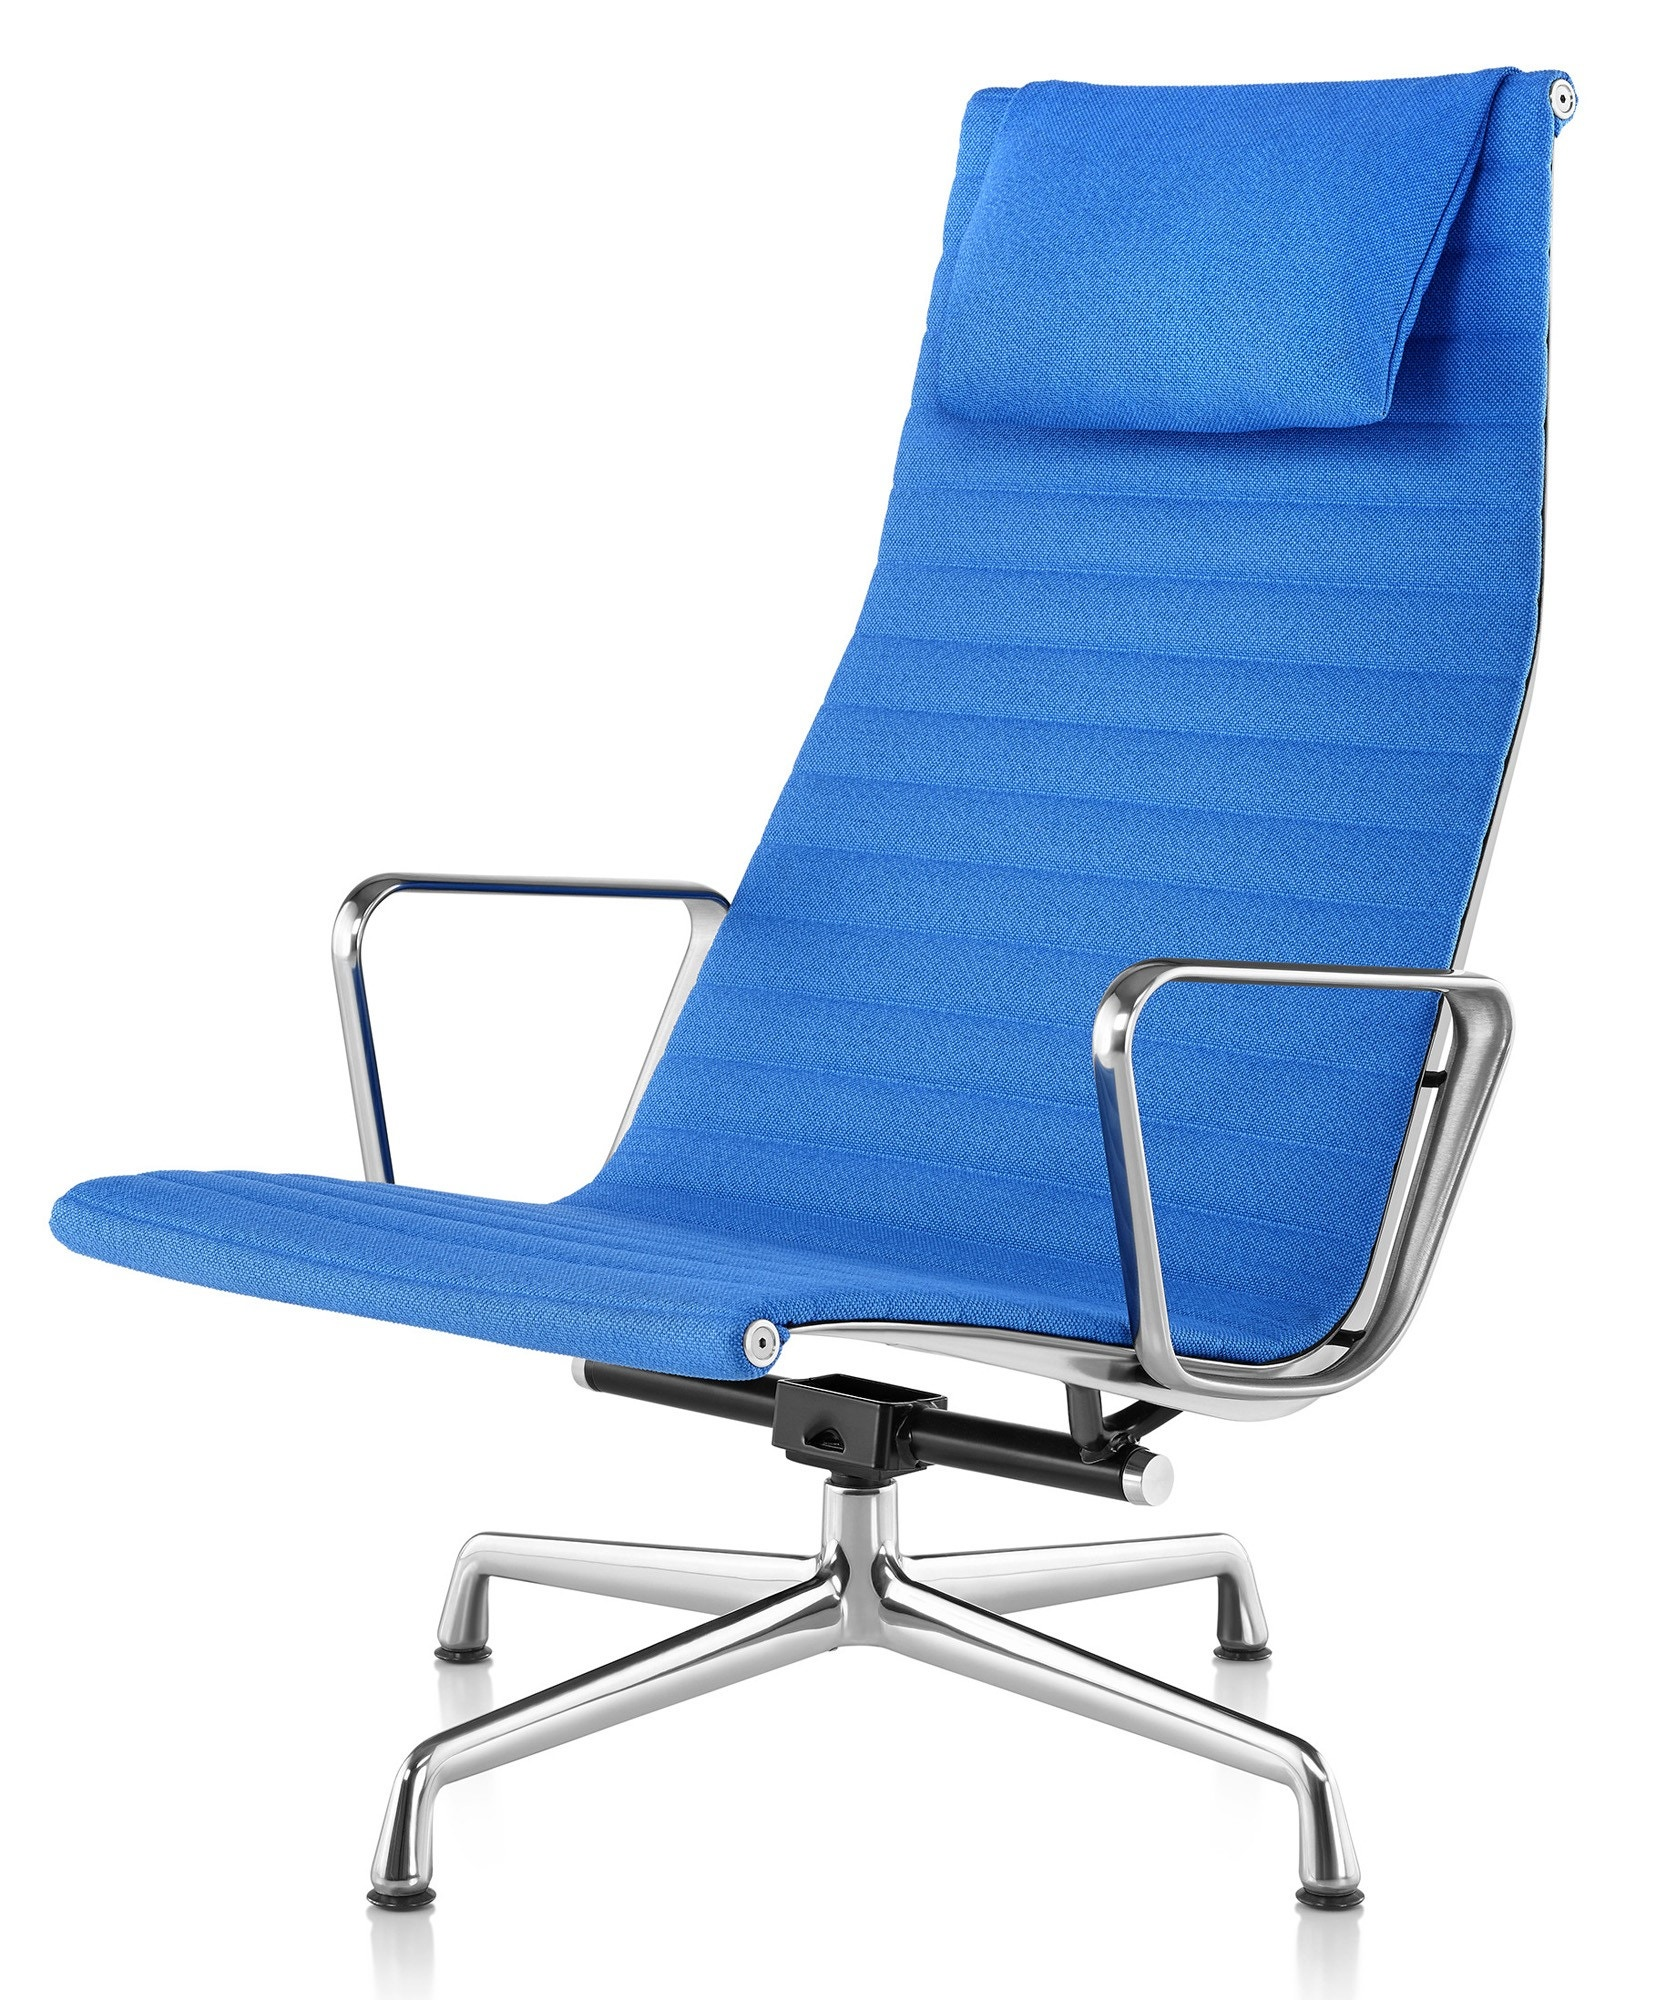 herman miller eames® aluminum group  lounge chair  gr shop canada - herman miller eames® aluminum group  lounge chair